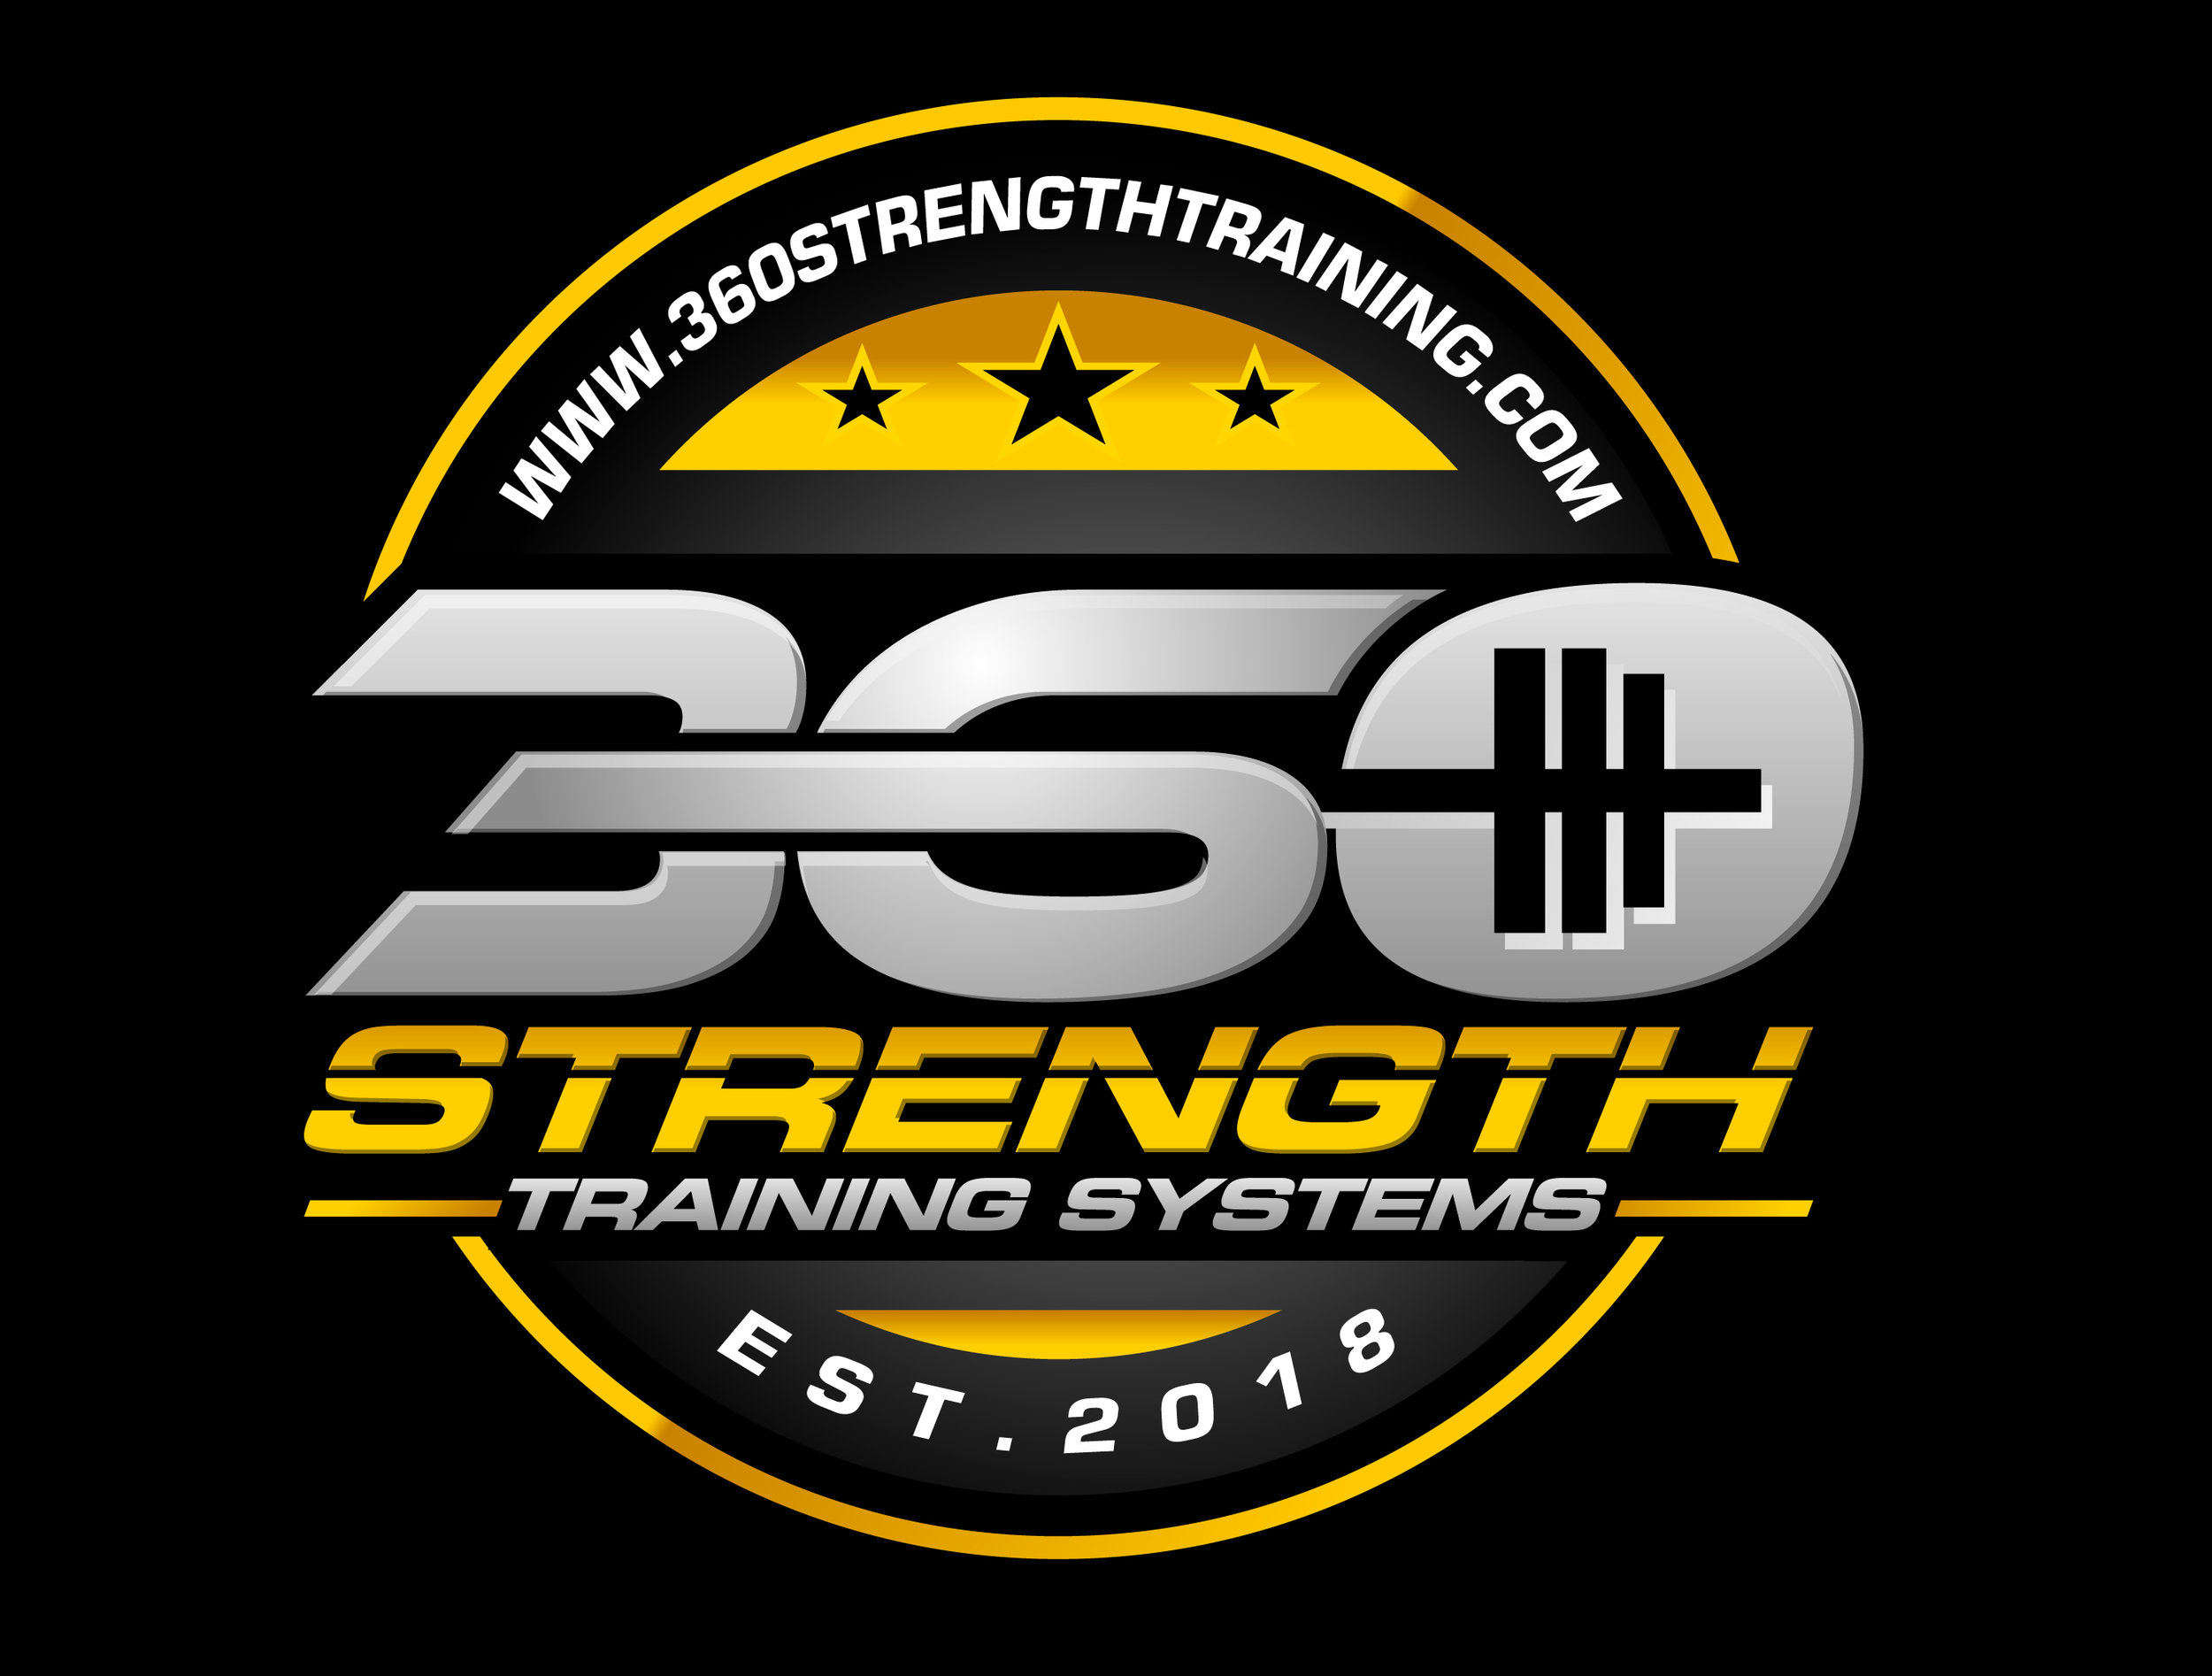 360 Strength Training - Engineering Core Strength for Wrestlers -